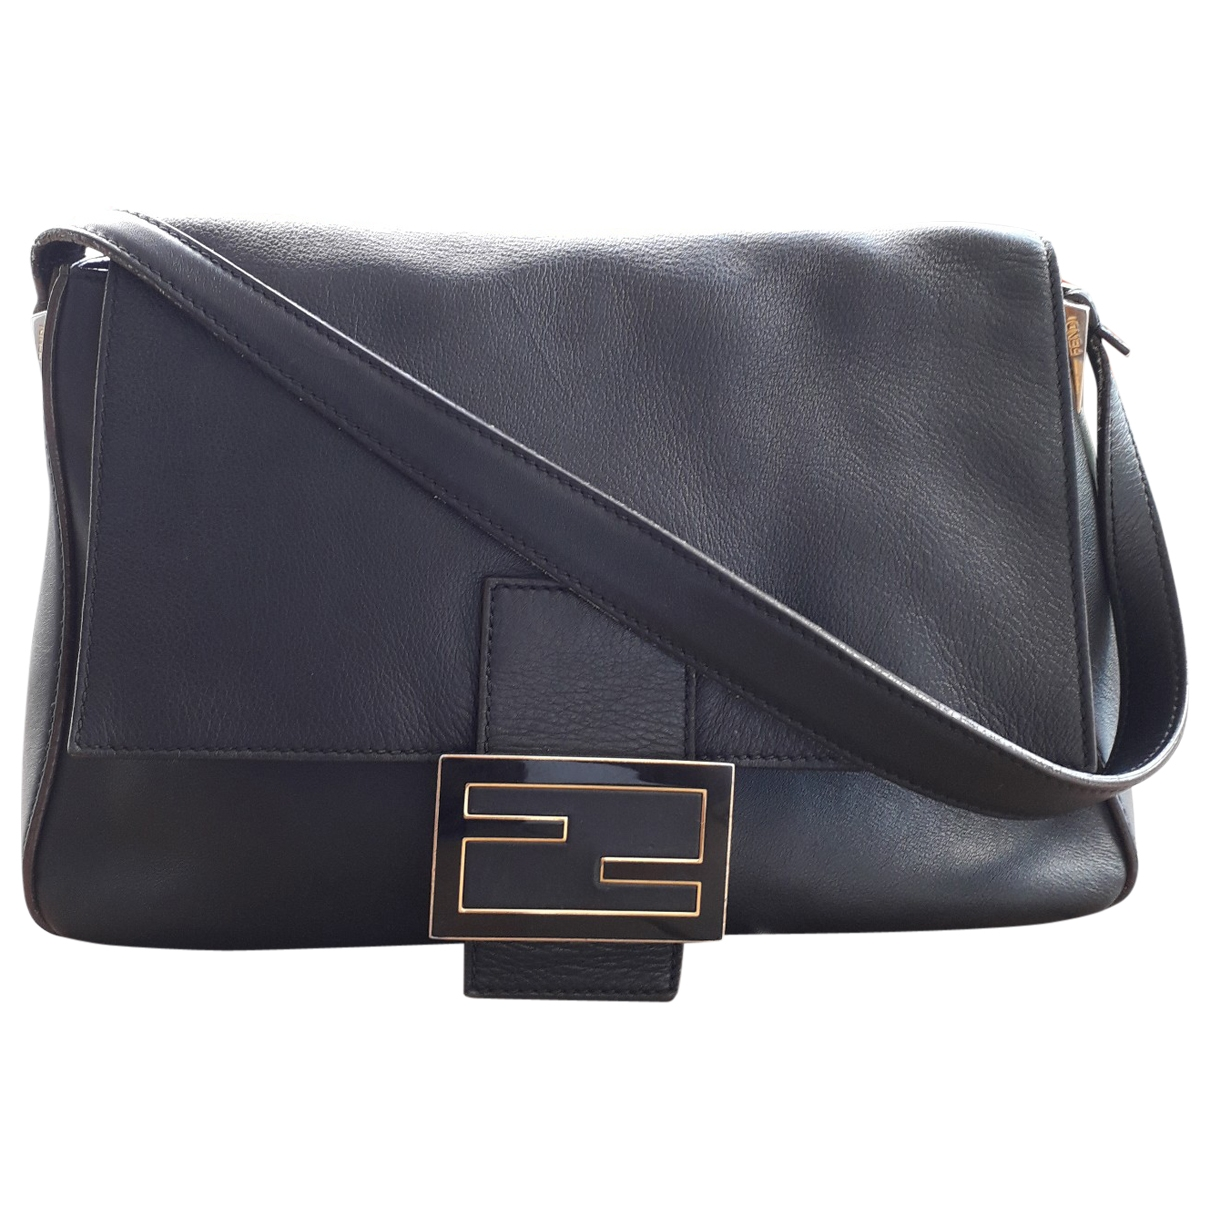 Fendi Mamma Baguette  Black Leather handbag for Women \N